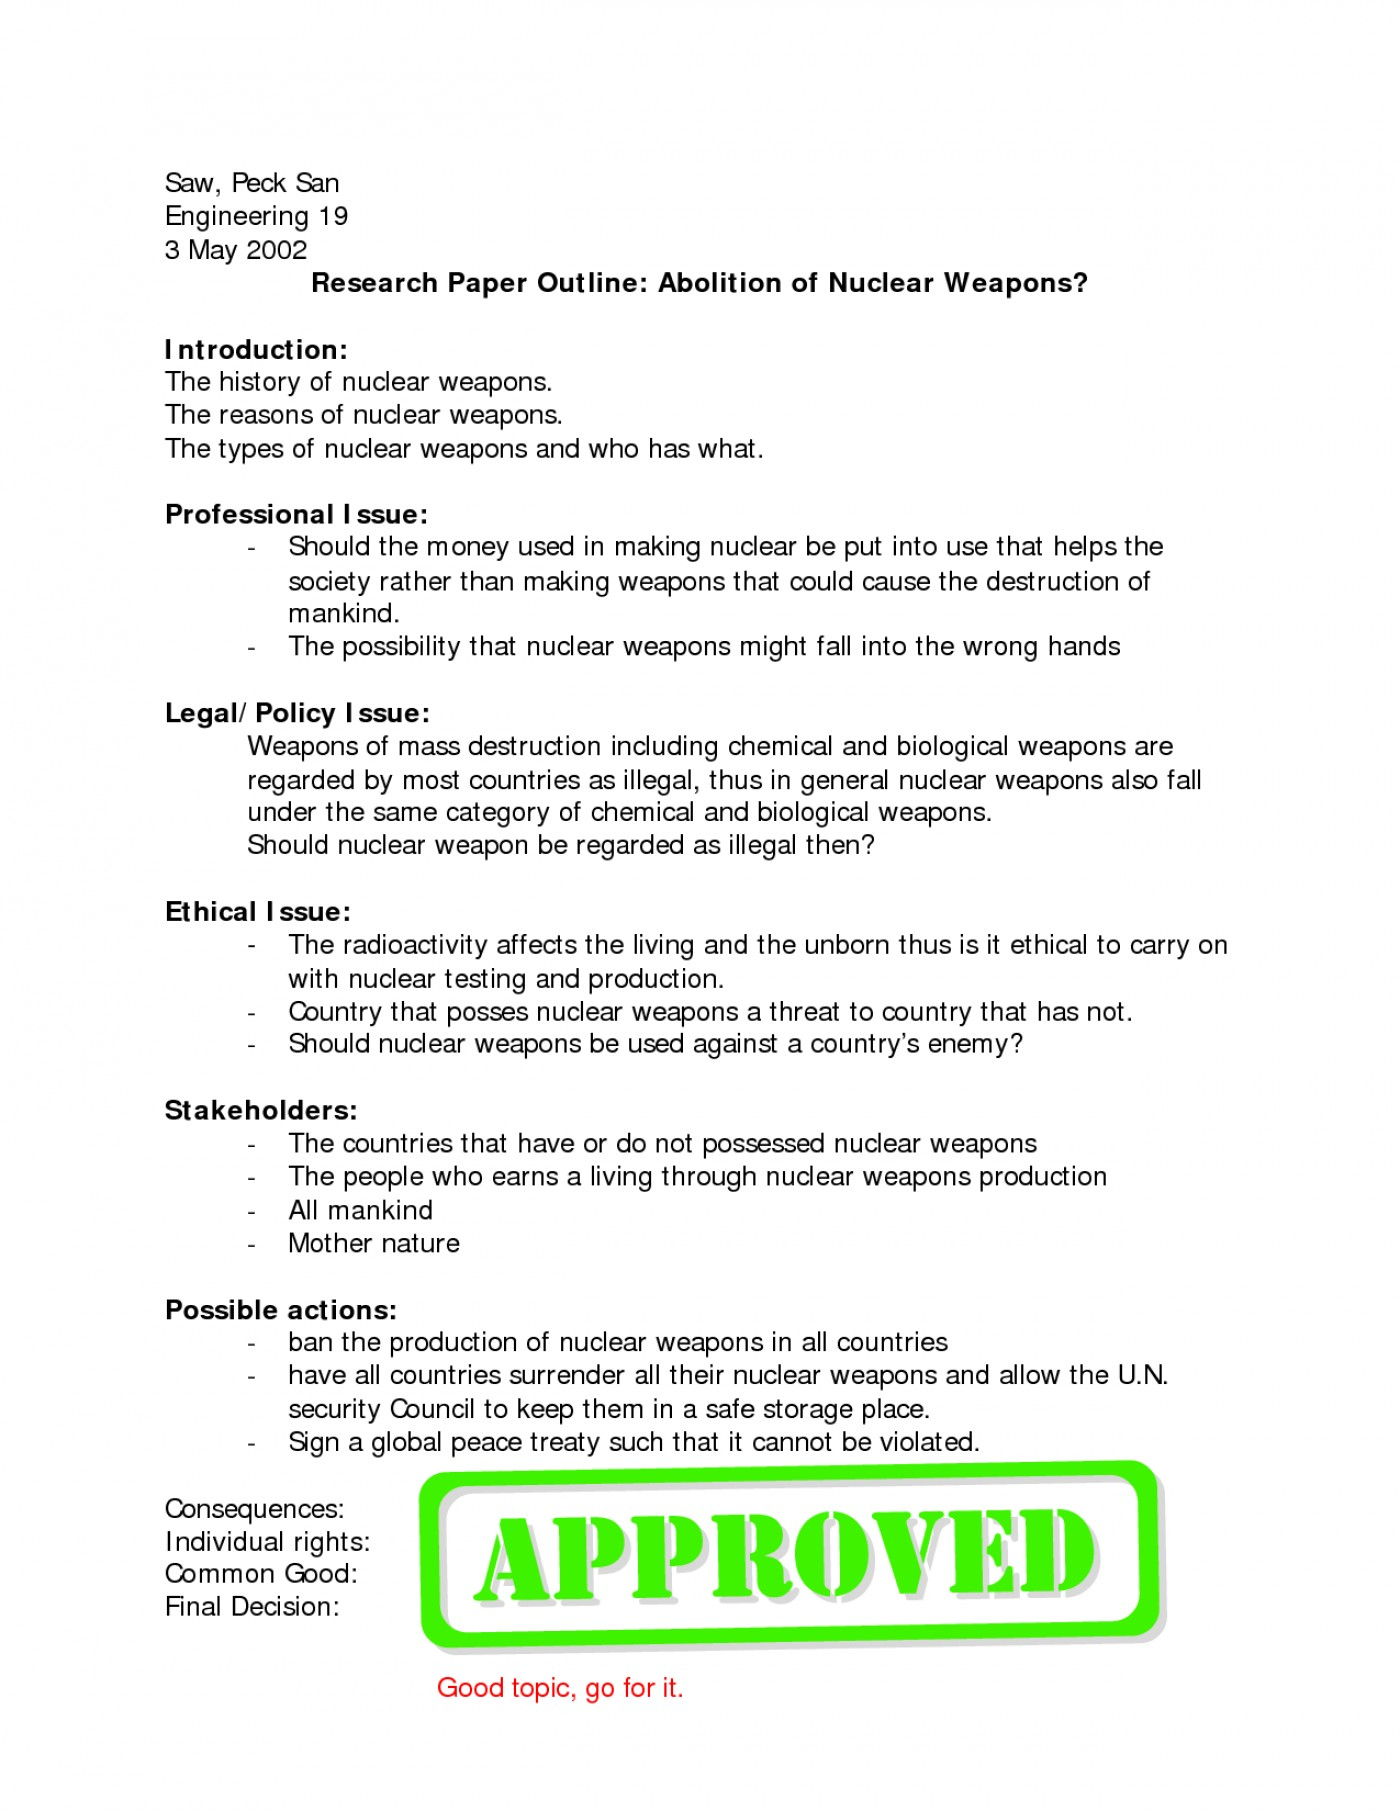 003 Argumentative Research Paper Topics History Online Writing Lab Term Outline Essay L Surprising American 1400